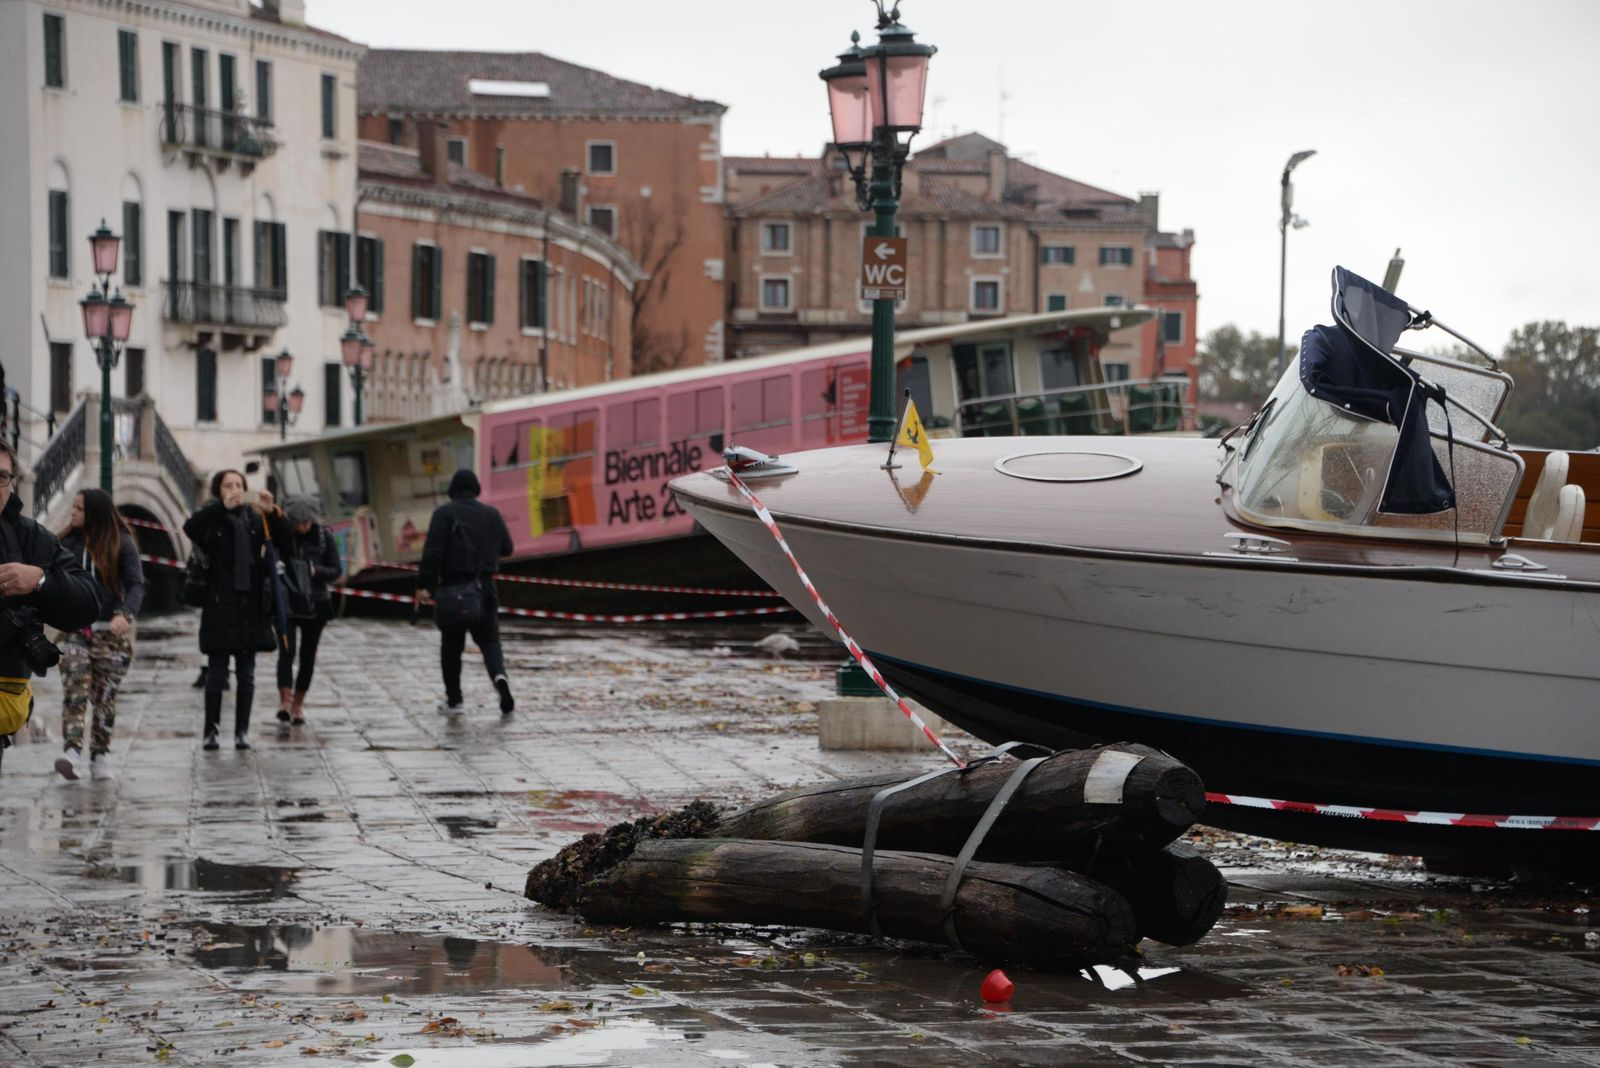 Boats are stranded on the docks after a high tide, in Venice, Italy, Wednesday, Nov. 13, 2019. Andrea Merola/ANSA via AP)